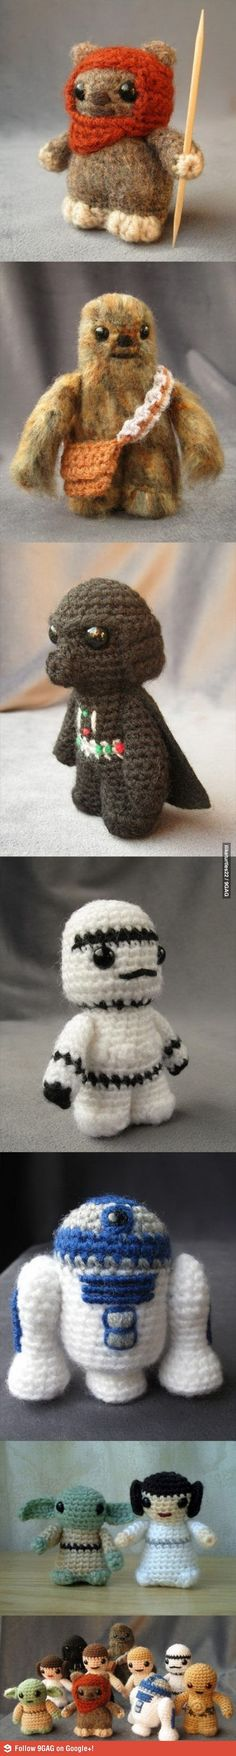 Free Crochet Patterns Amigurumi Star Wars : 1000+ images about Star Wars amigurumi on Pinterest Star ...